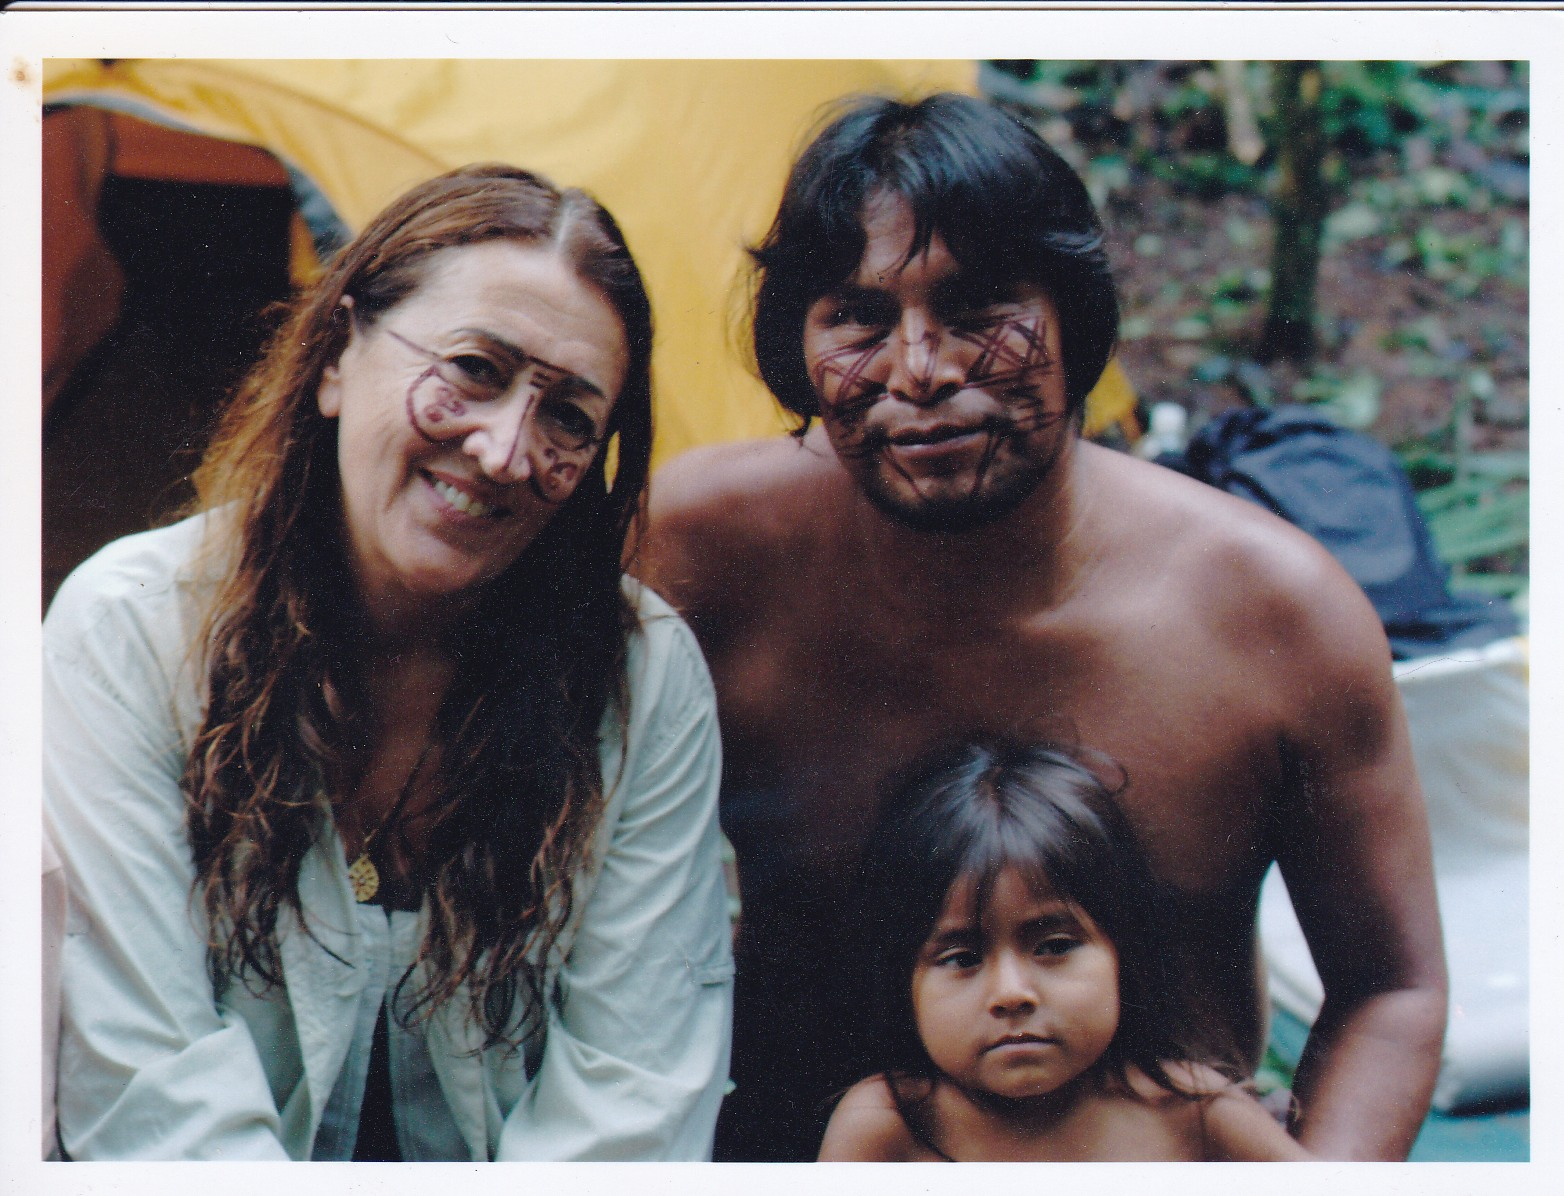 Lynne in the Amazon, visiting the Achuar Tribe of Ecuador, experiencing local Shamanic rituals.